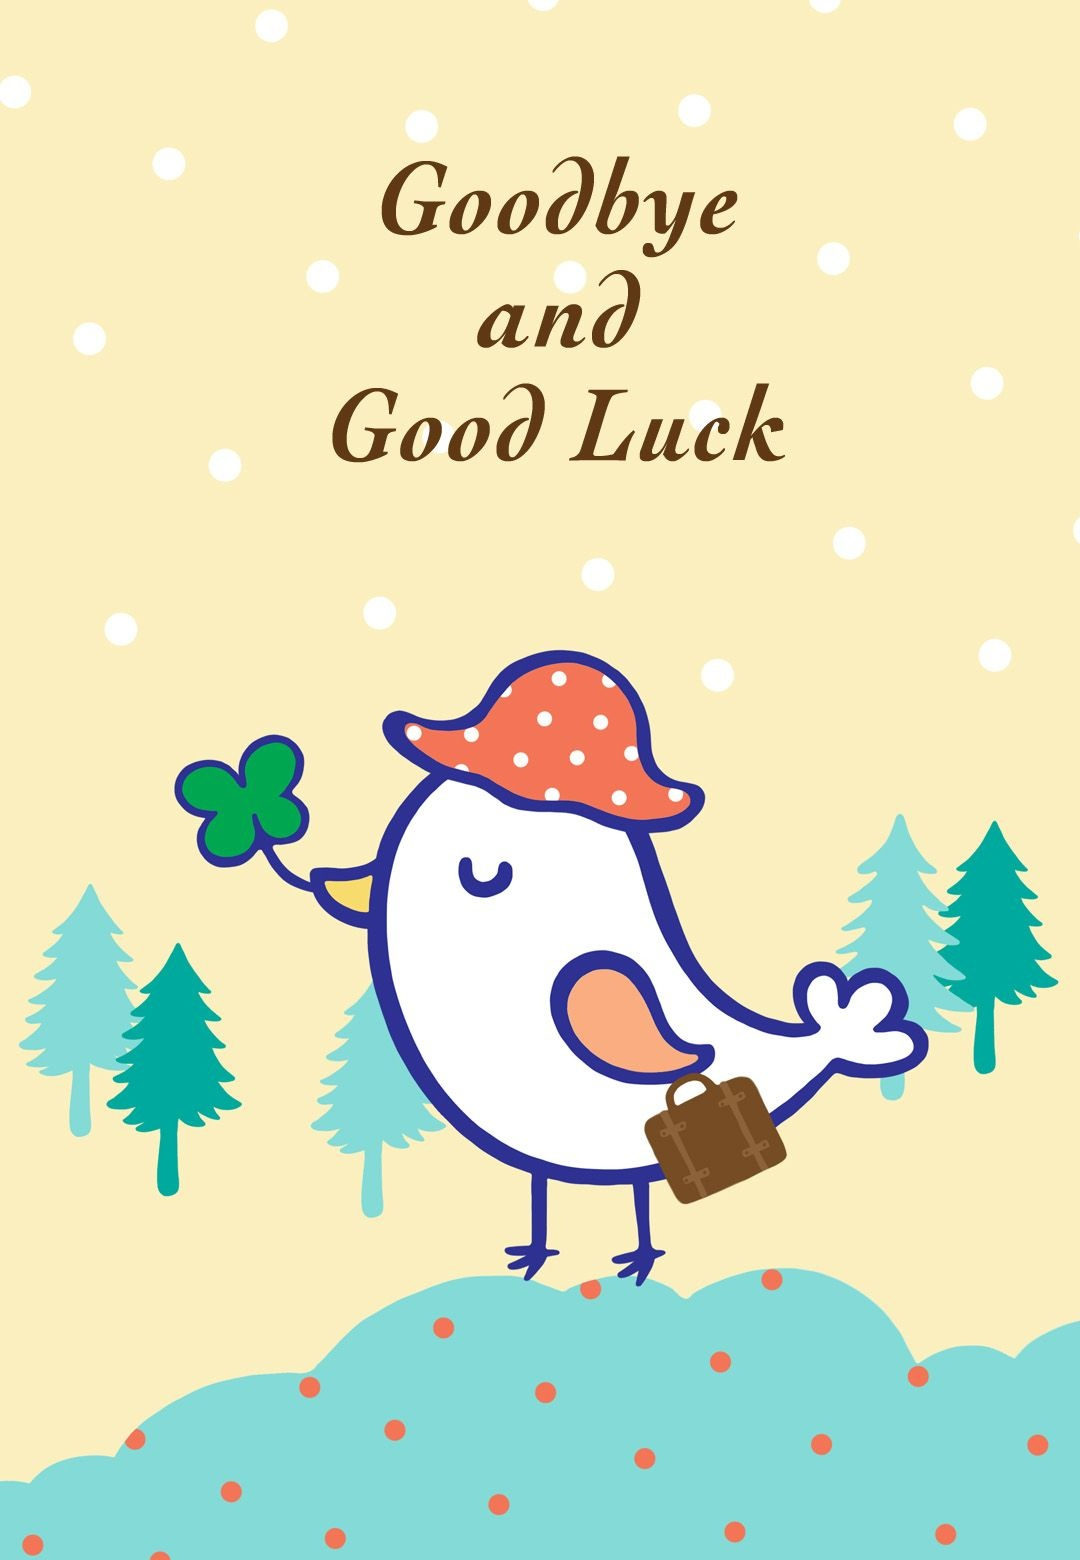 Free Printable Goodbye And Good Luck Greeting Card | Littlestar - Free Printable Funny Boss Day Cards